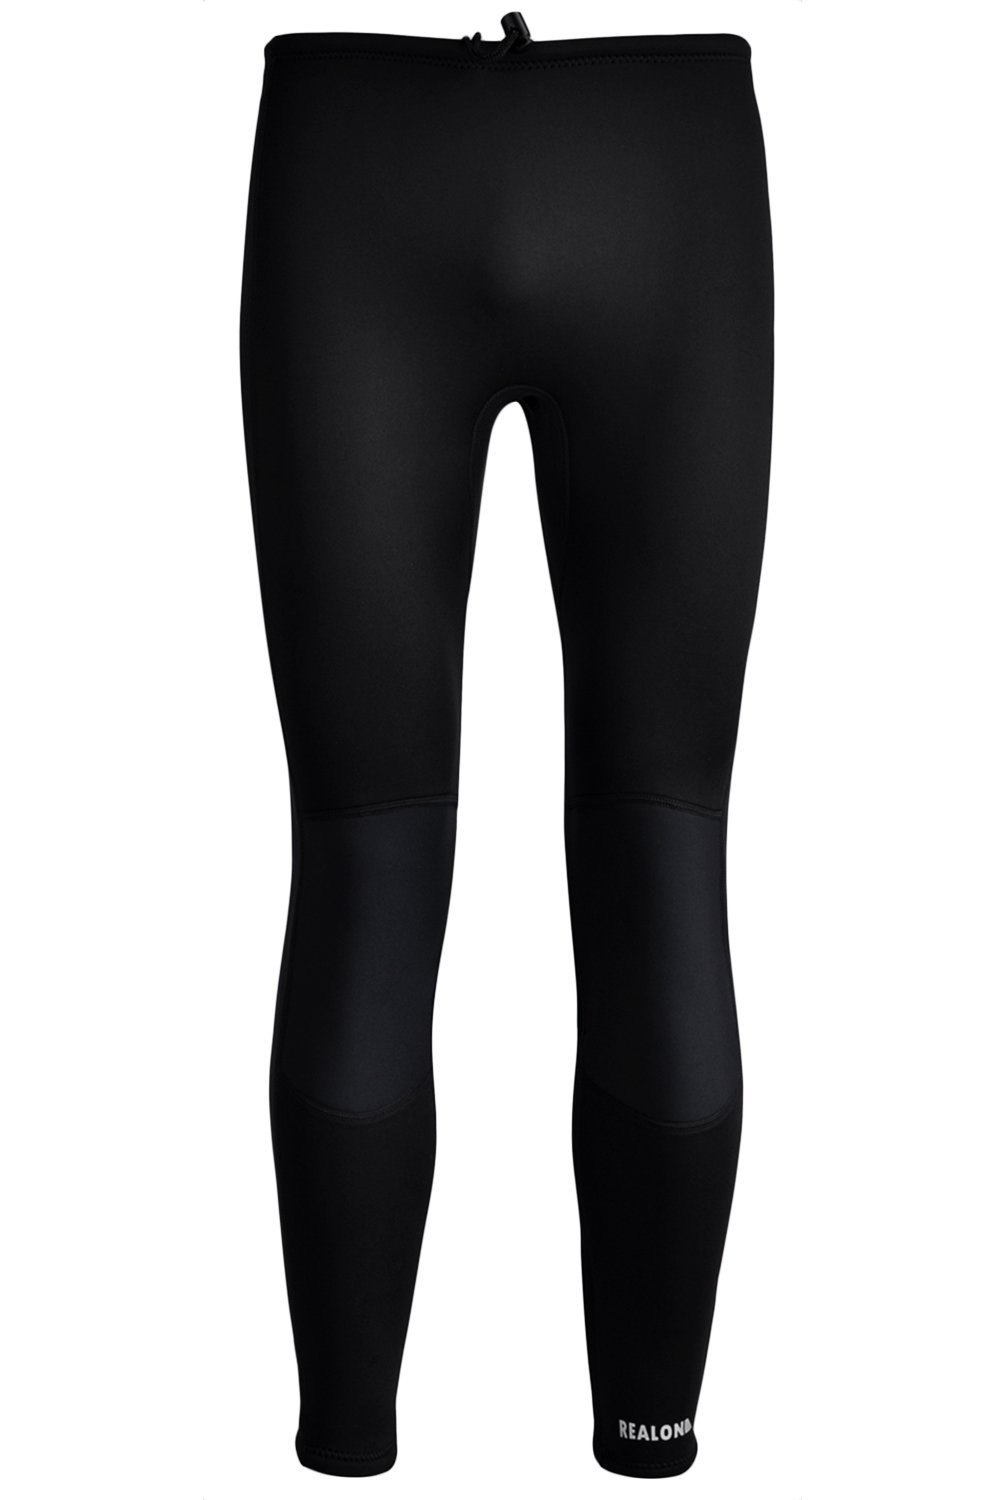 6387636c7df701 Realon Swim Tights Wetsuit Pants Men and Women's 3mm Neoprene Outdoor  Recreation UV Suit Leggings Girls